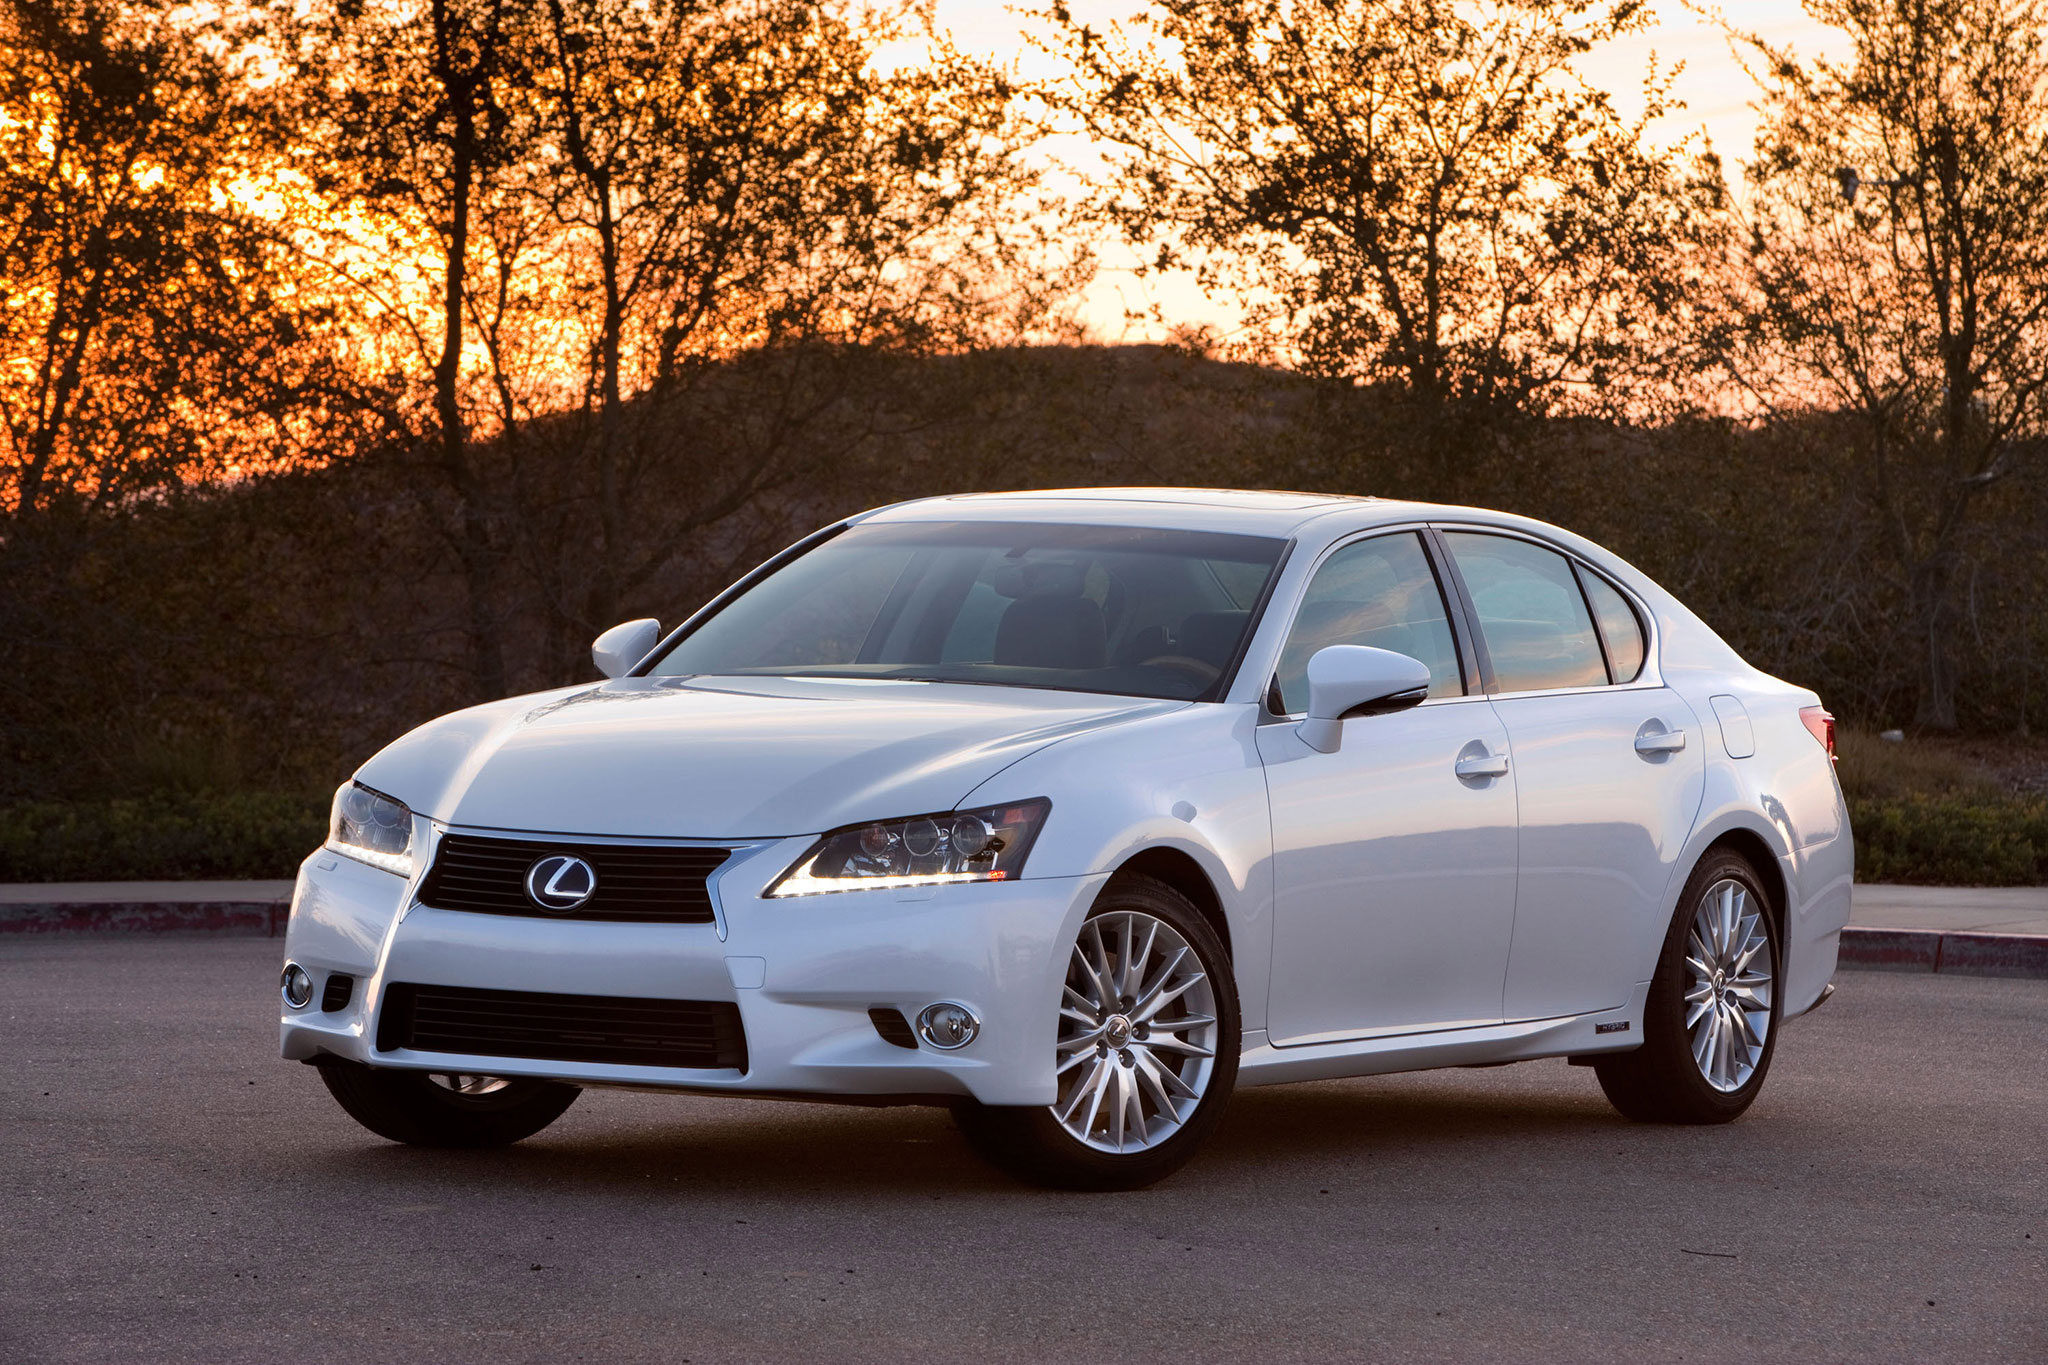 Lexus GS 450h F Sport & Possible Lexus GS F ing Soon Japanese